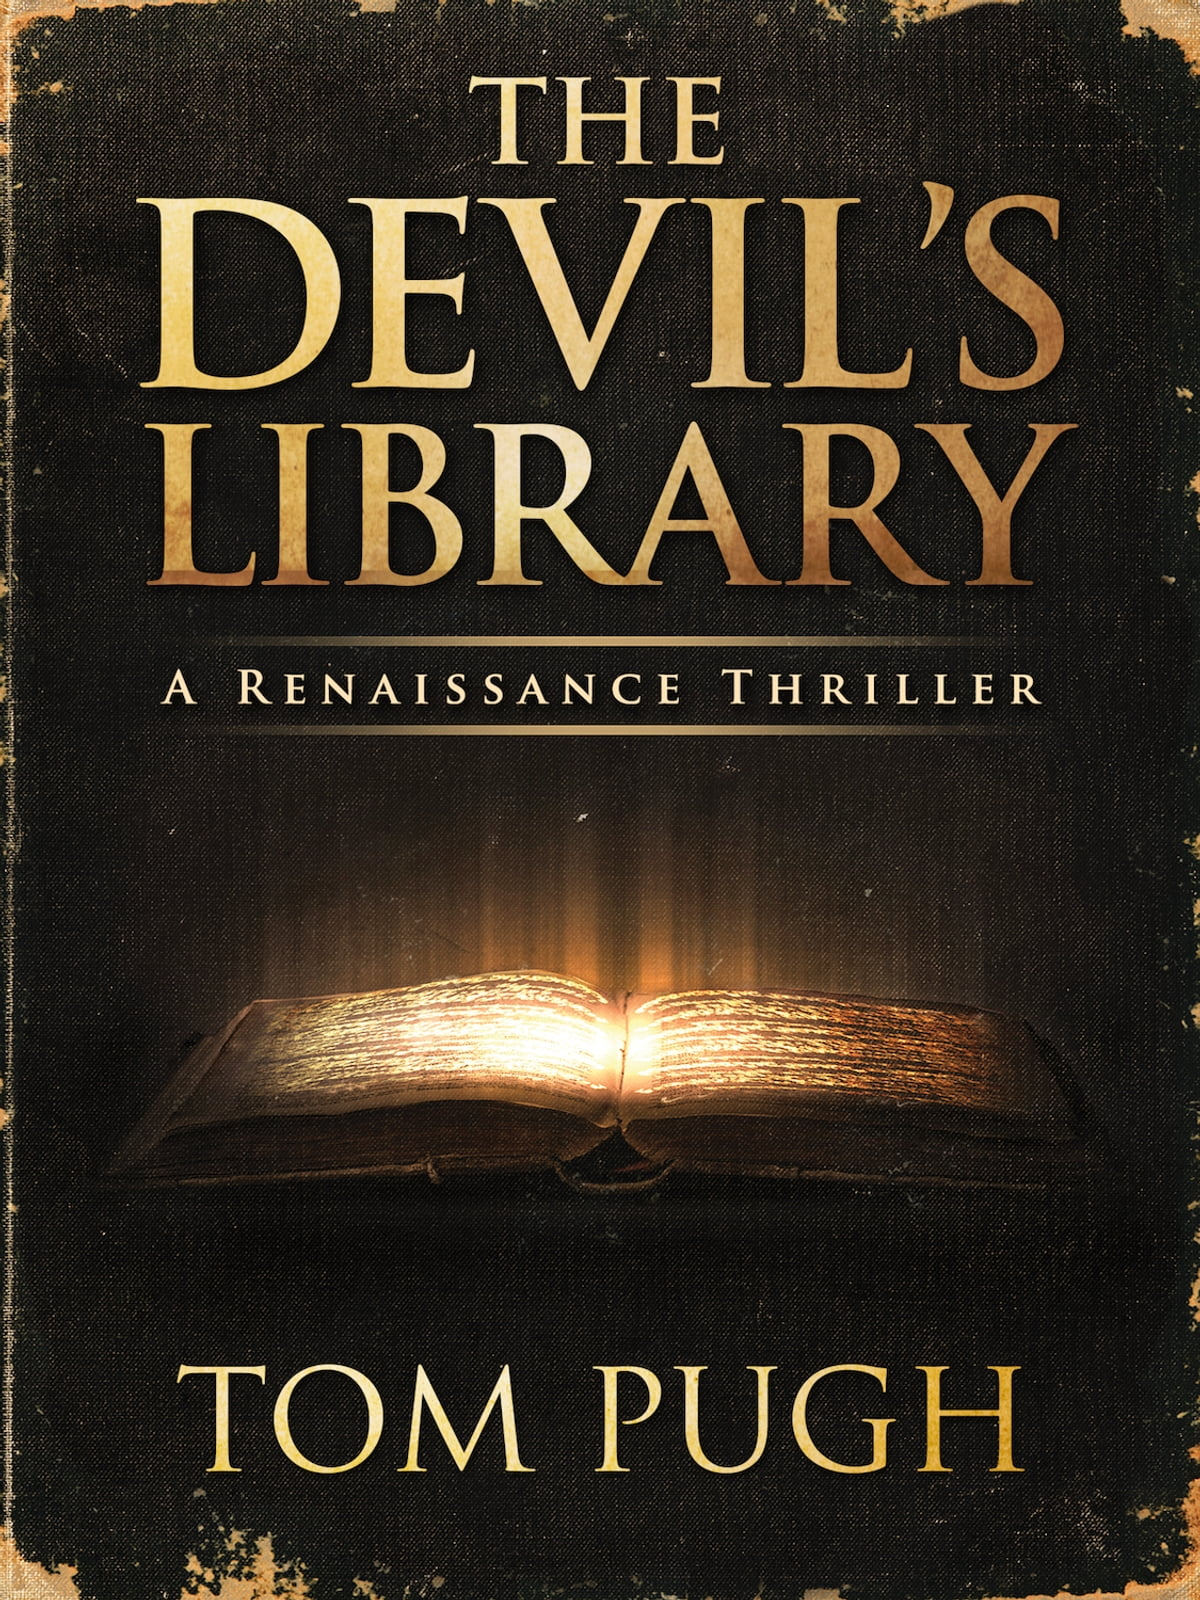 The Devil's Library Ebook By Tom Pugh